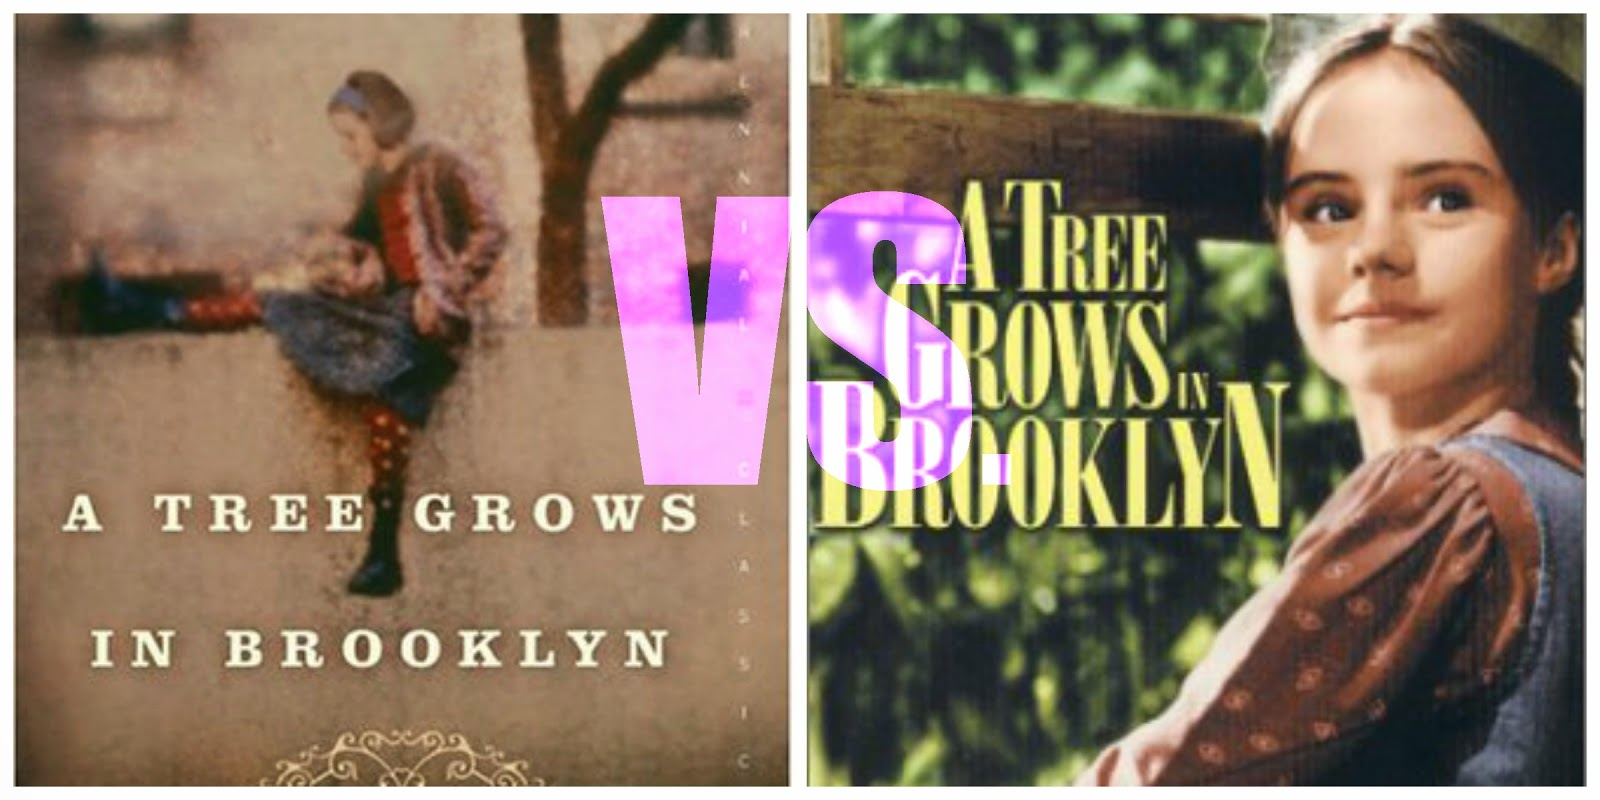 a tree grows in brooklyn essay prompts A tree grows in brooklyn this essay a tree grows in brooklyn and other 63,000+ term papers, college essay examples and free essays are available now on reviewessayscom.